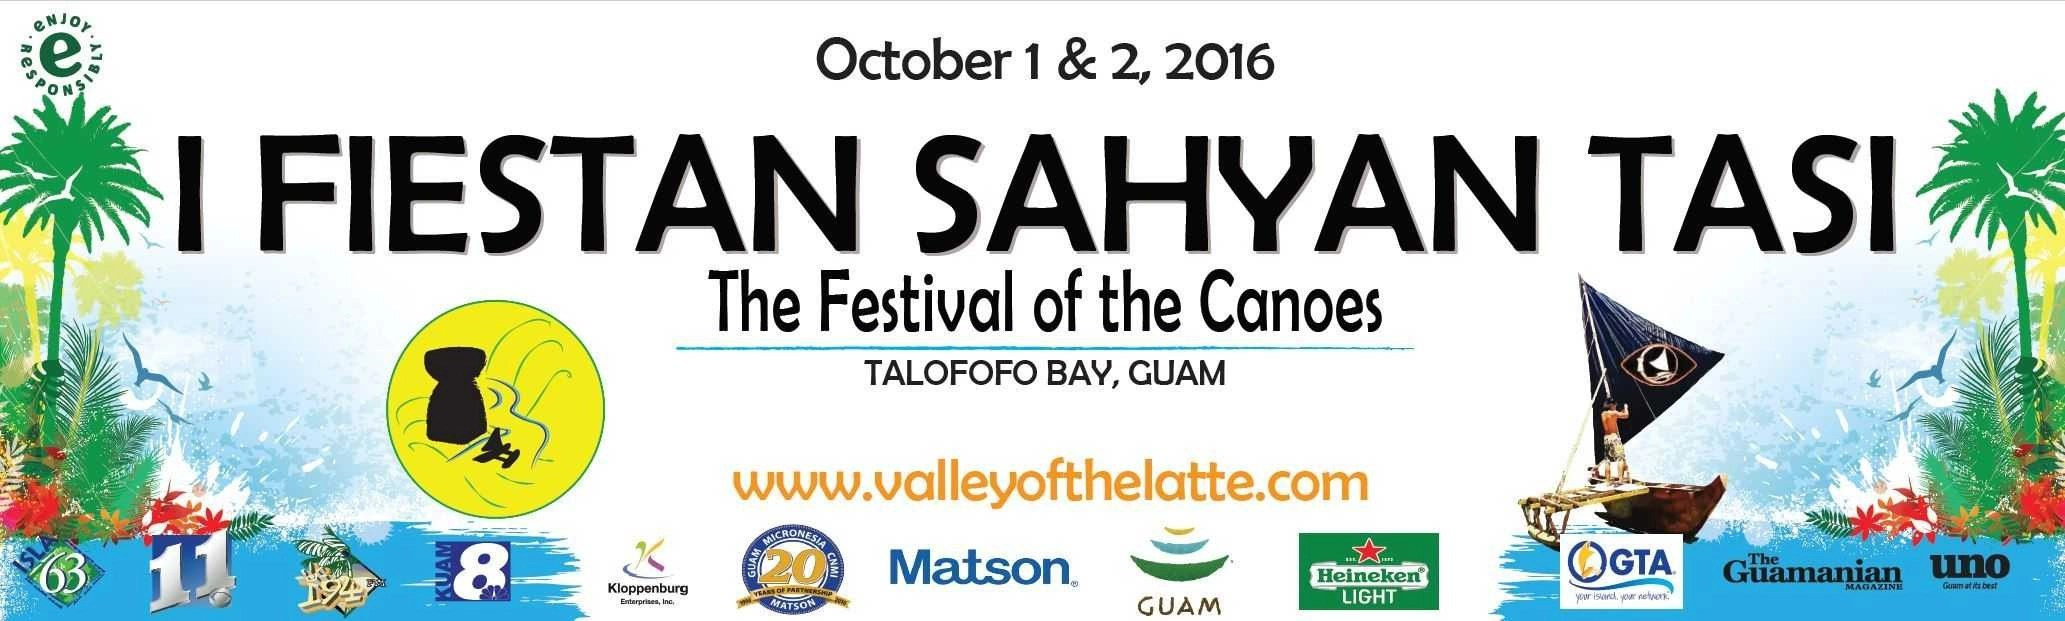 Guam's Valley of the Latte Adventure Park Tours and Activities. First Annual Festival of the Canoes- I Fiestan Sahyan Tasi.